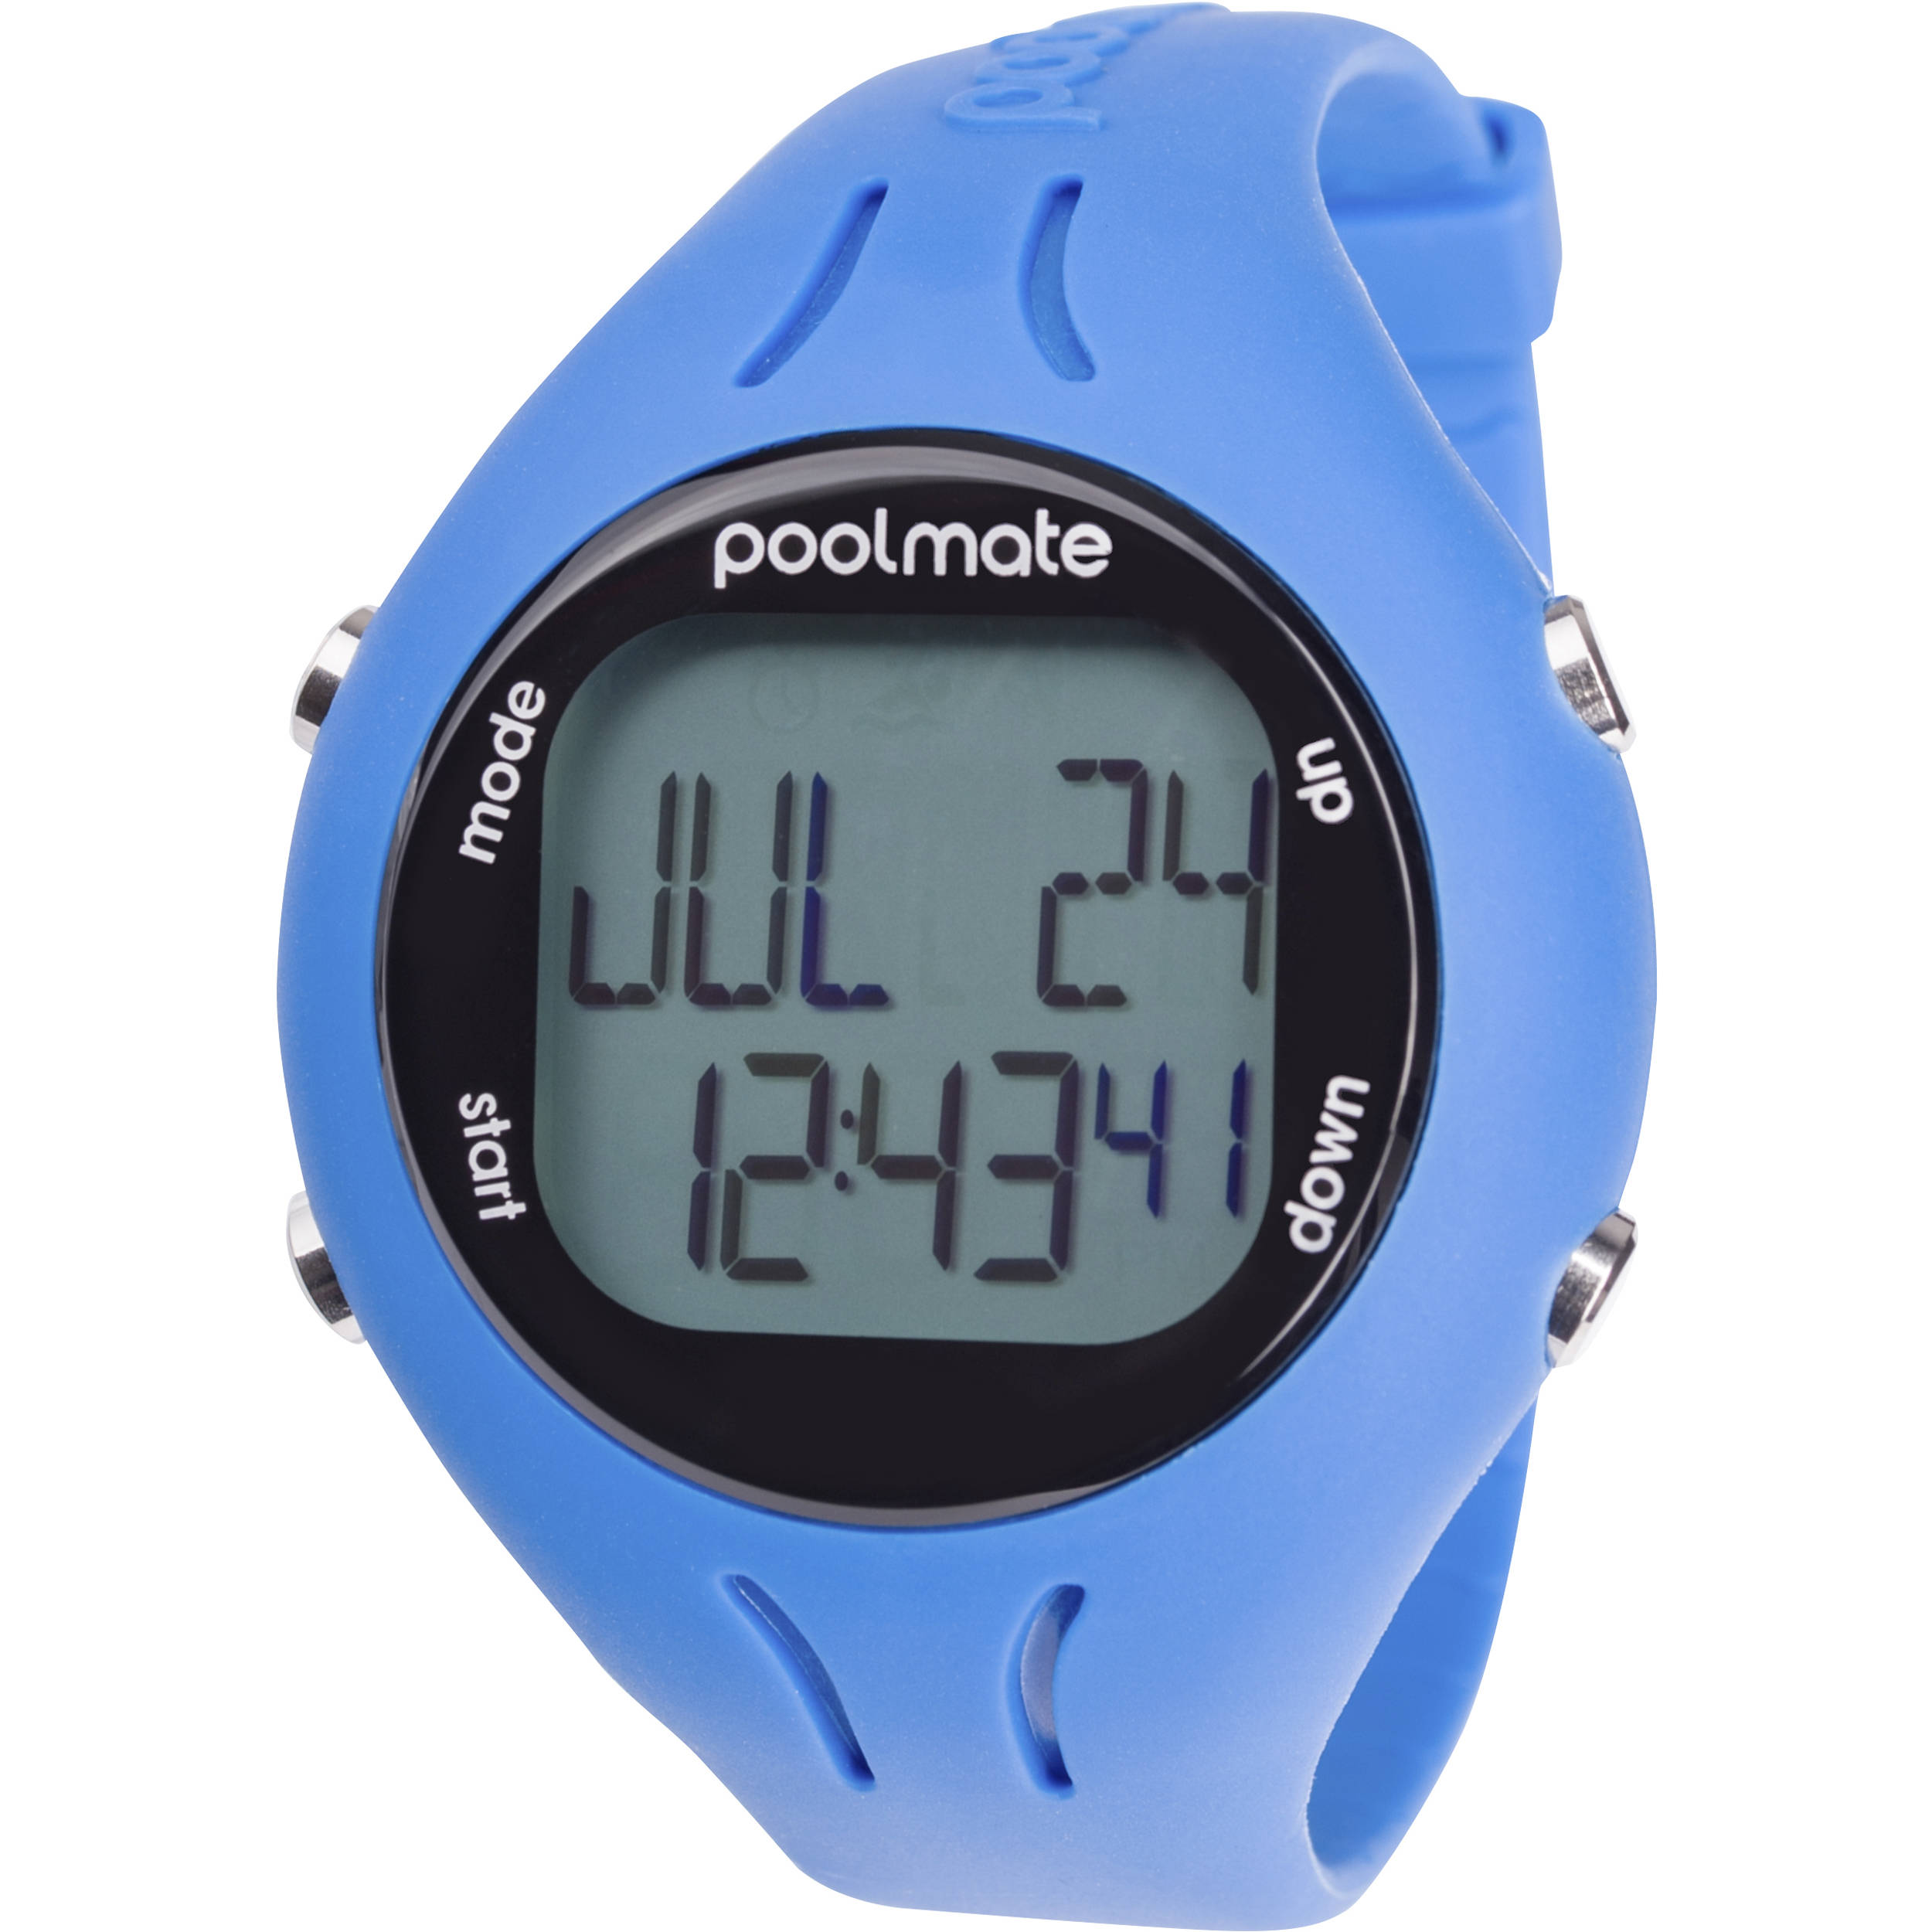 Swimovate Poolmate 2 Swimming Watch Blue Pm2bl B H Photo Video